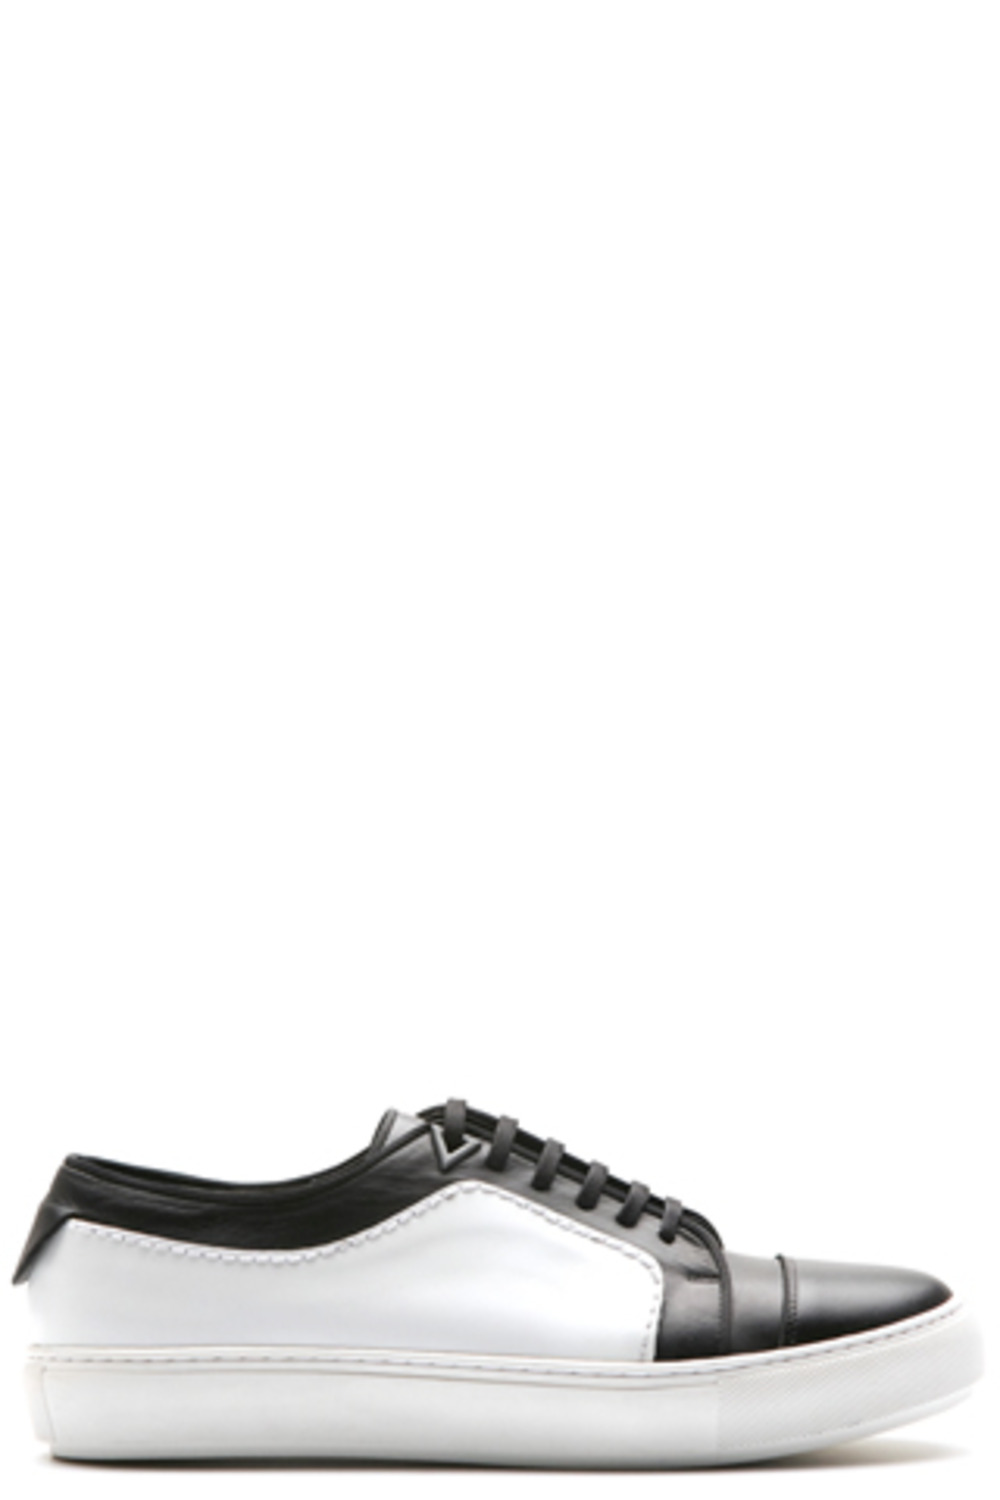 White & Black Stich Sneakers